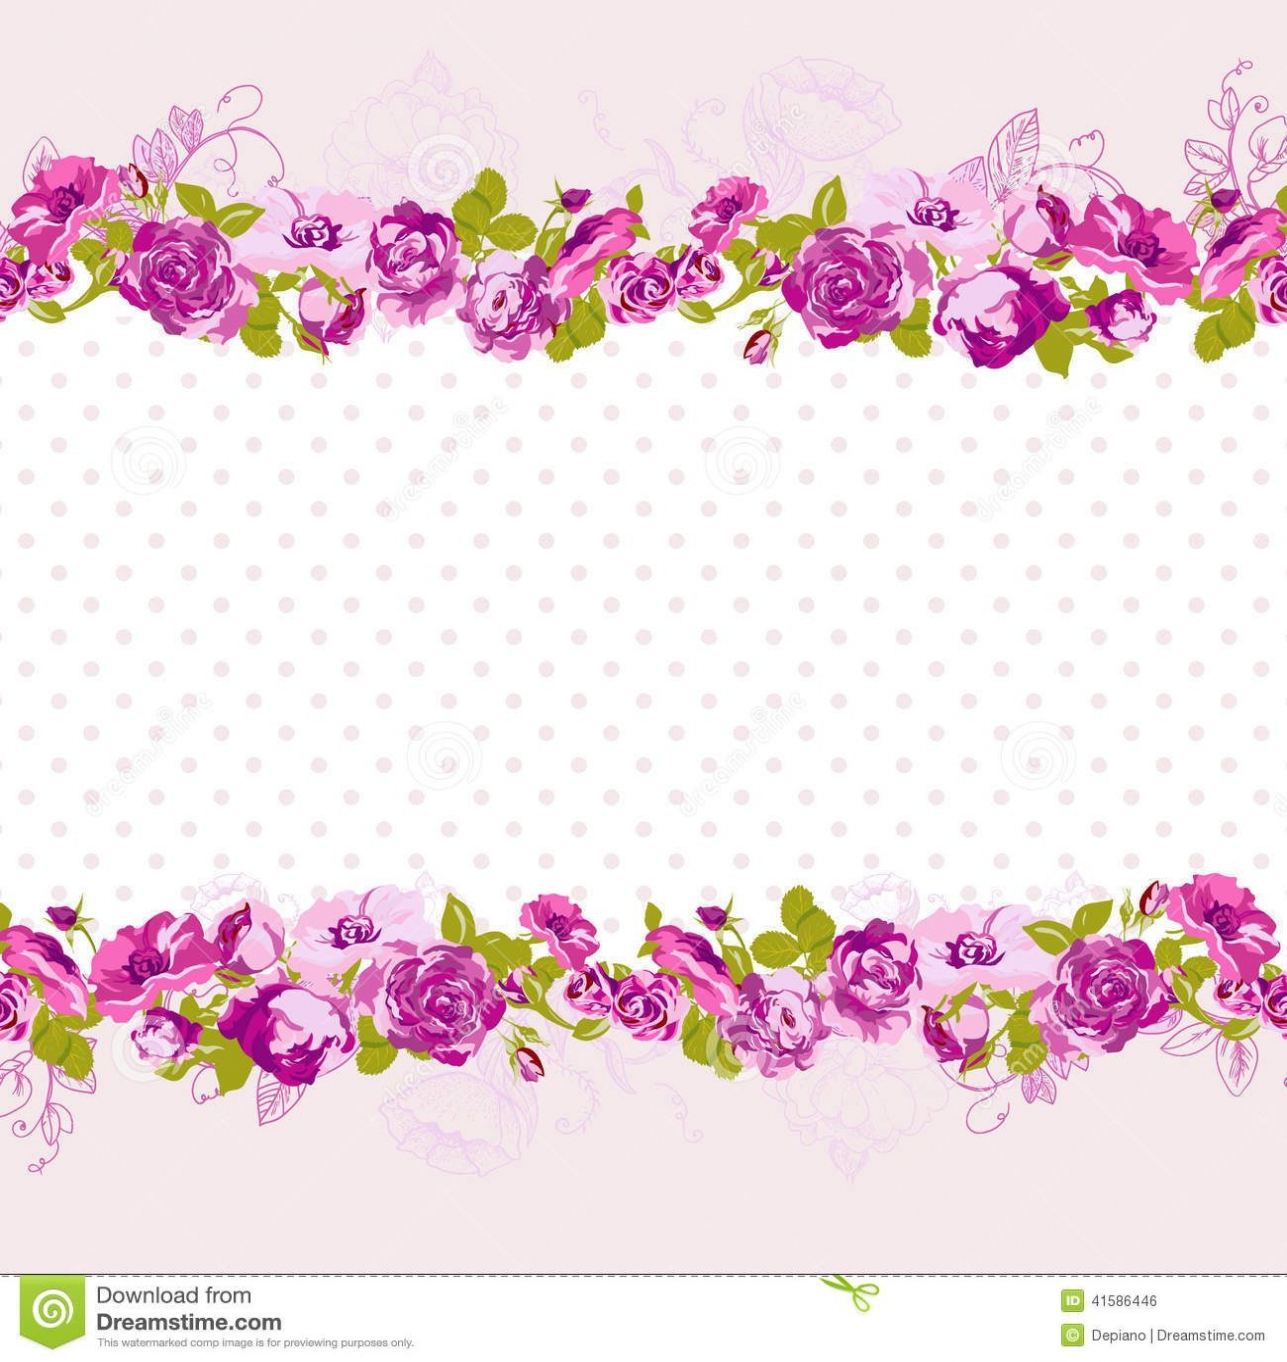 free birthday borders for invitations ; birthday-card-background-design-images-free-birthday-cards-borders-for-birthday-invitations